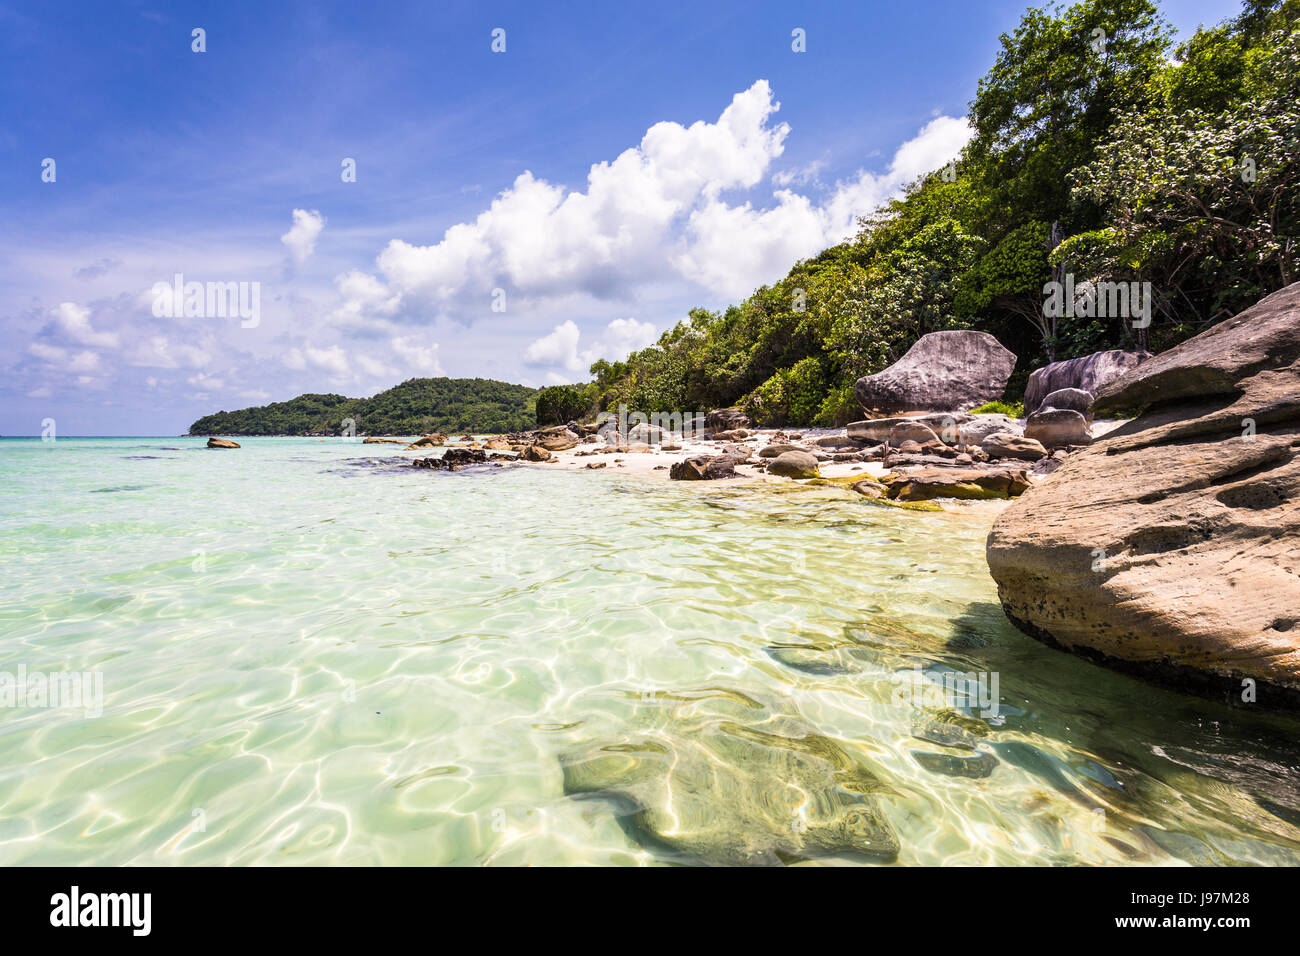 Idyllic Bai Sao beach, which means white sand, in the popular Phu Quoc island in the Gulf of Thailand in south Vietnam - Stock Image